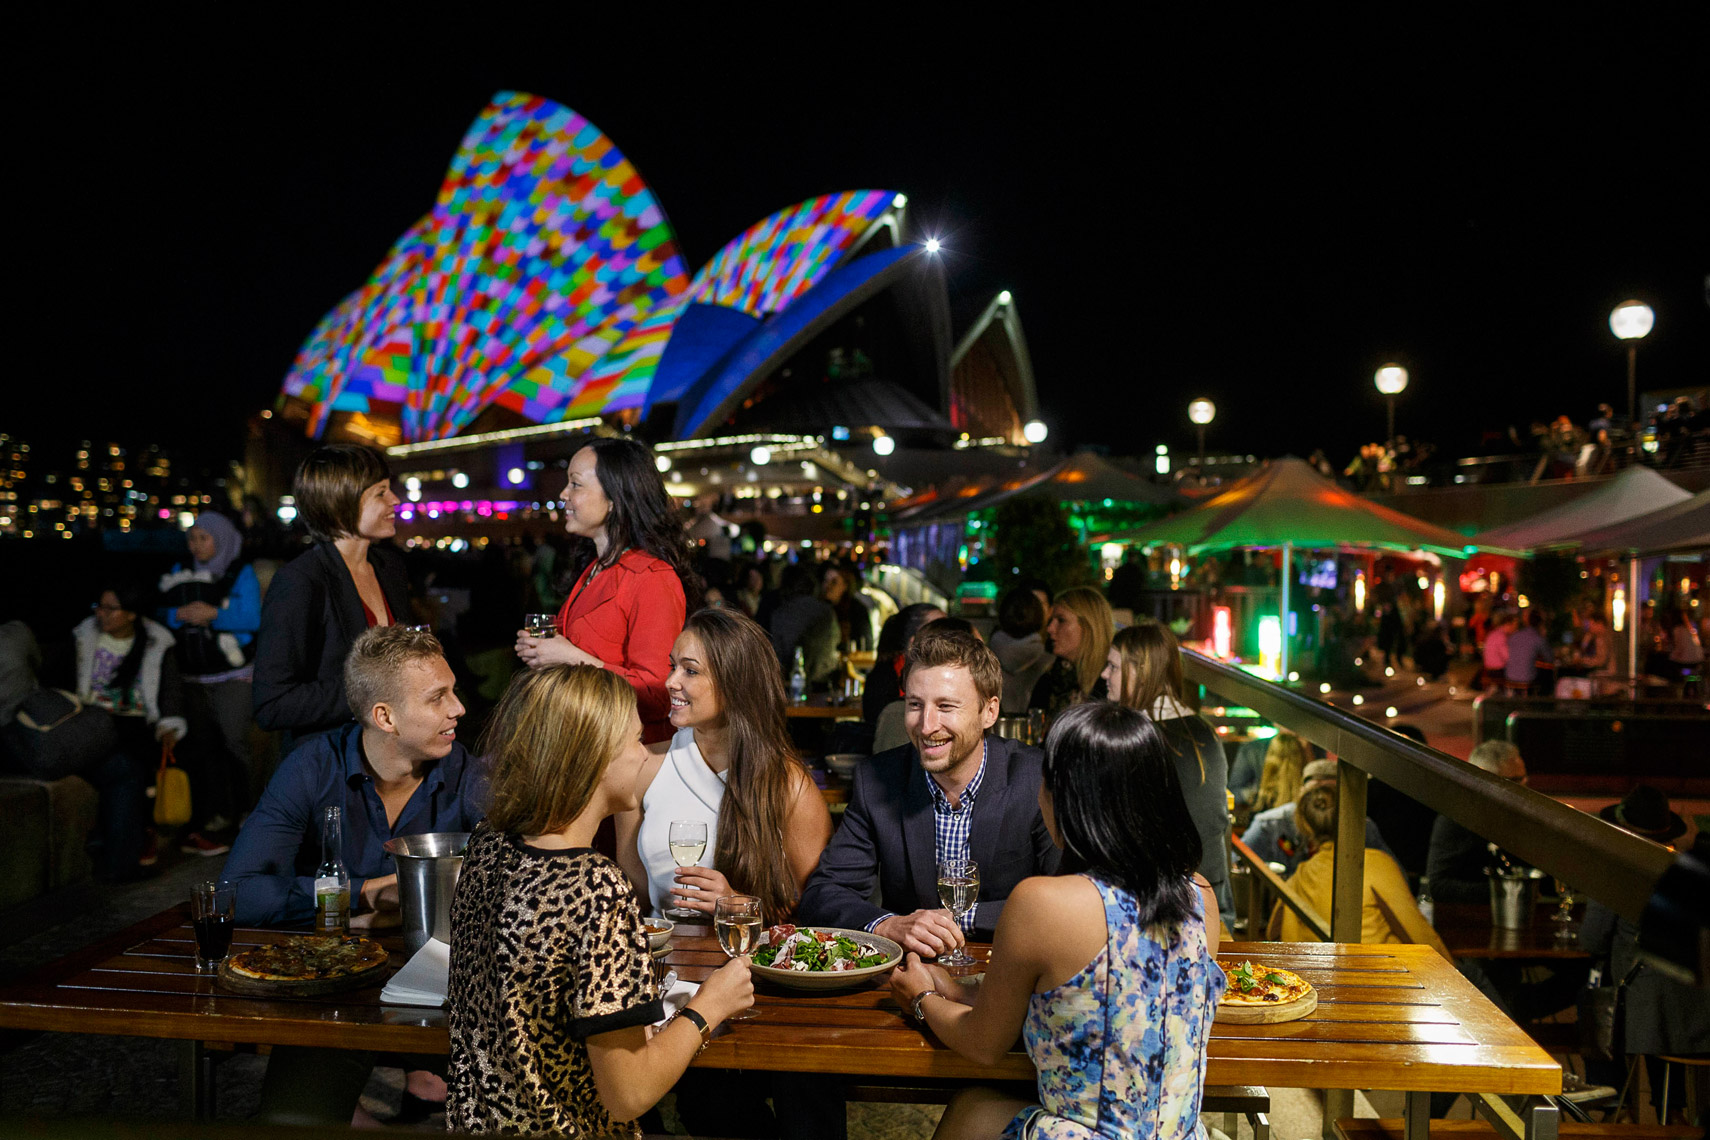 Vivid-Sydney-2014_Opera-Bar_Sydney-Opera-House_James-Horan_DNSW_089